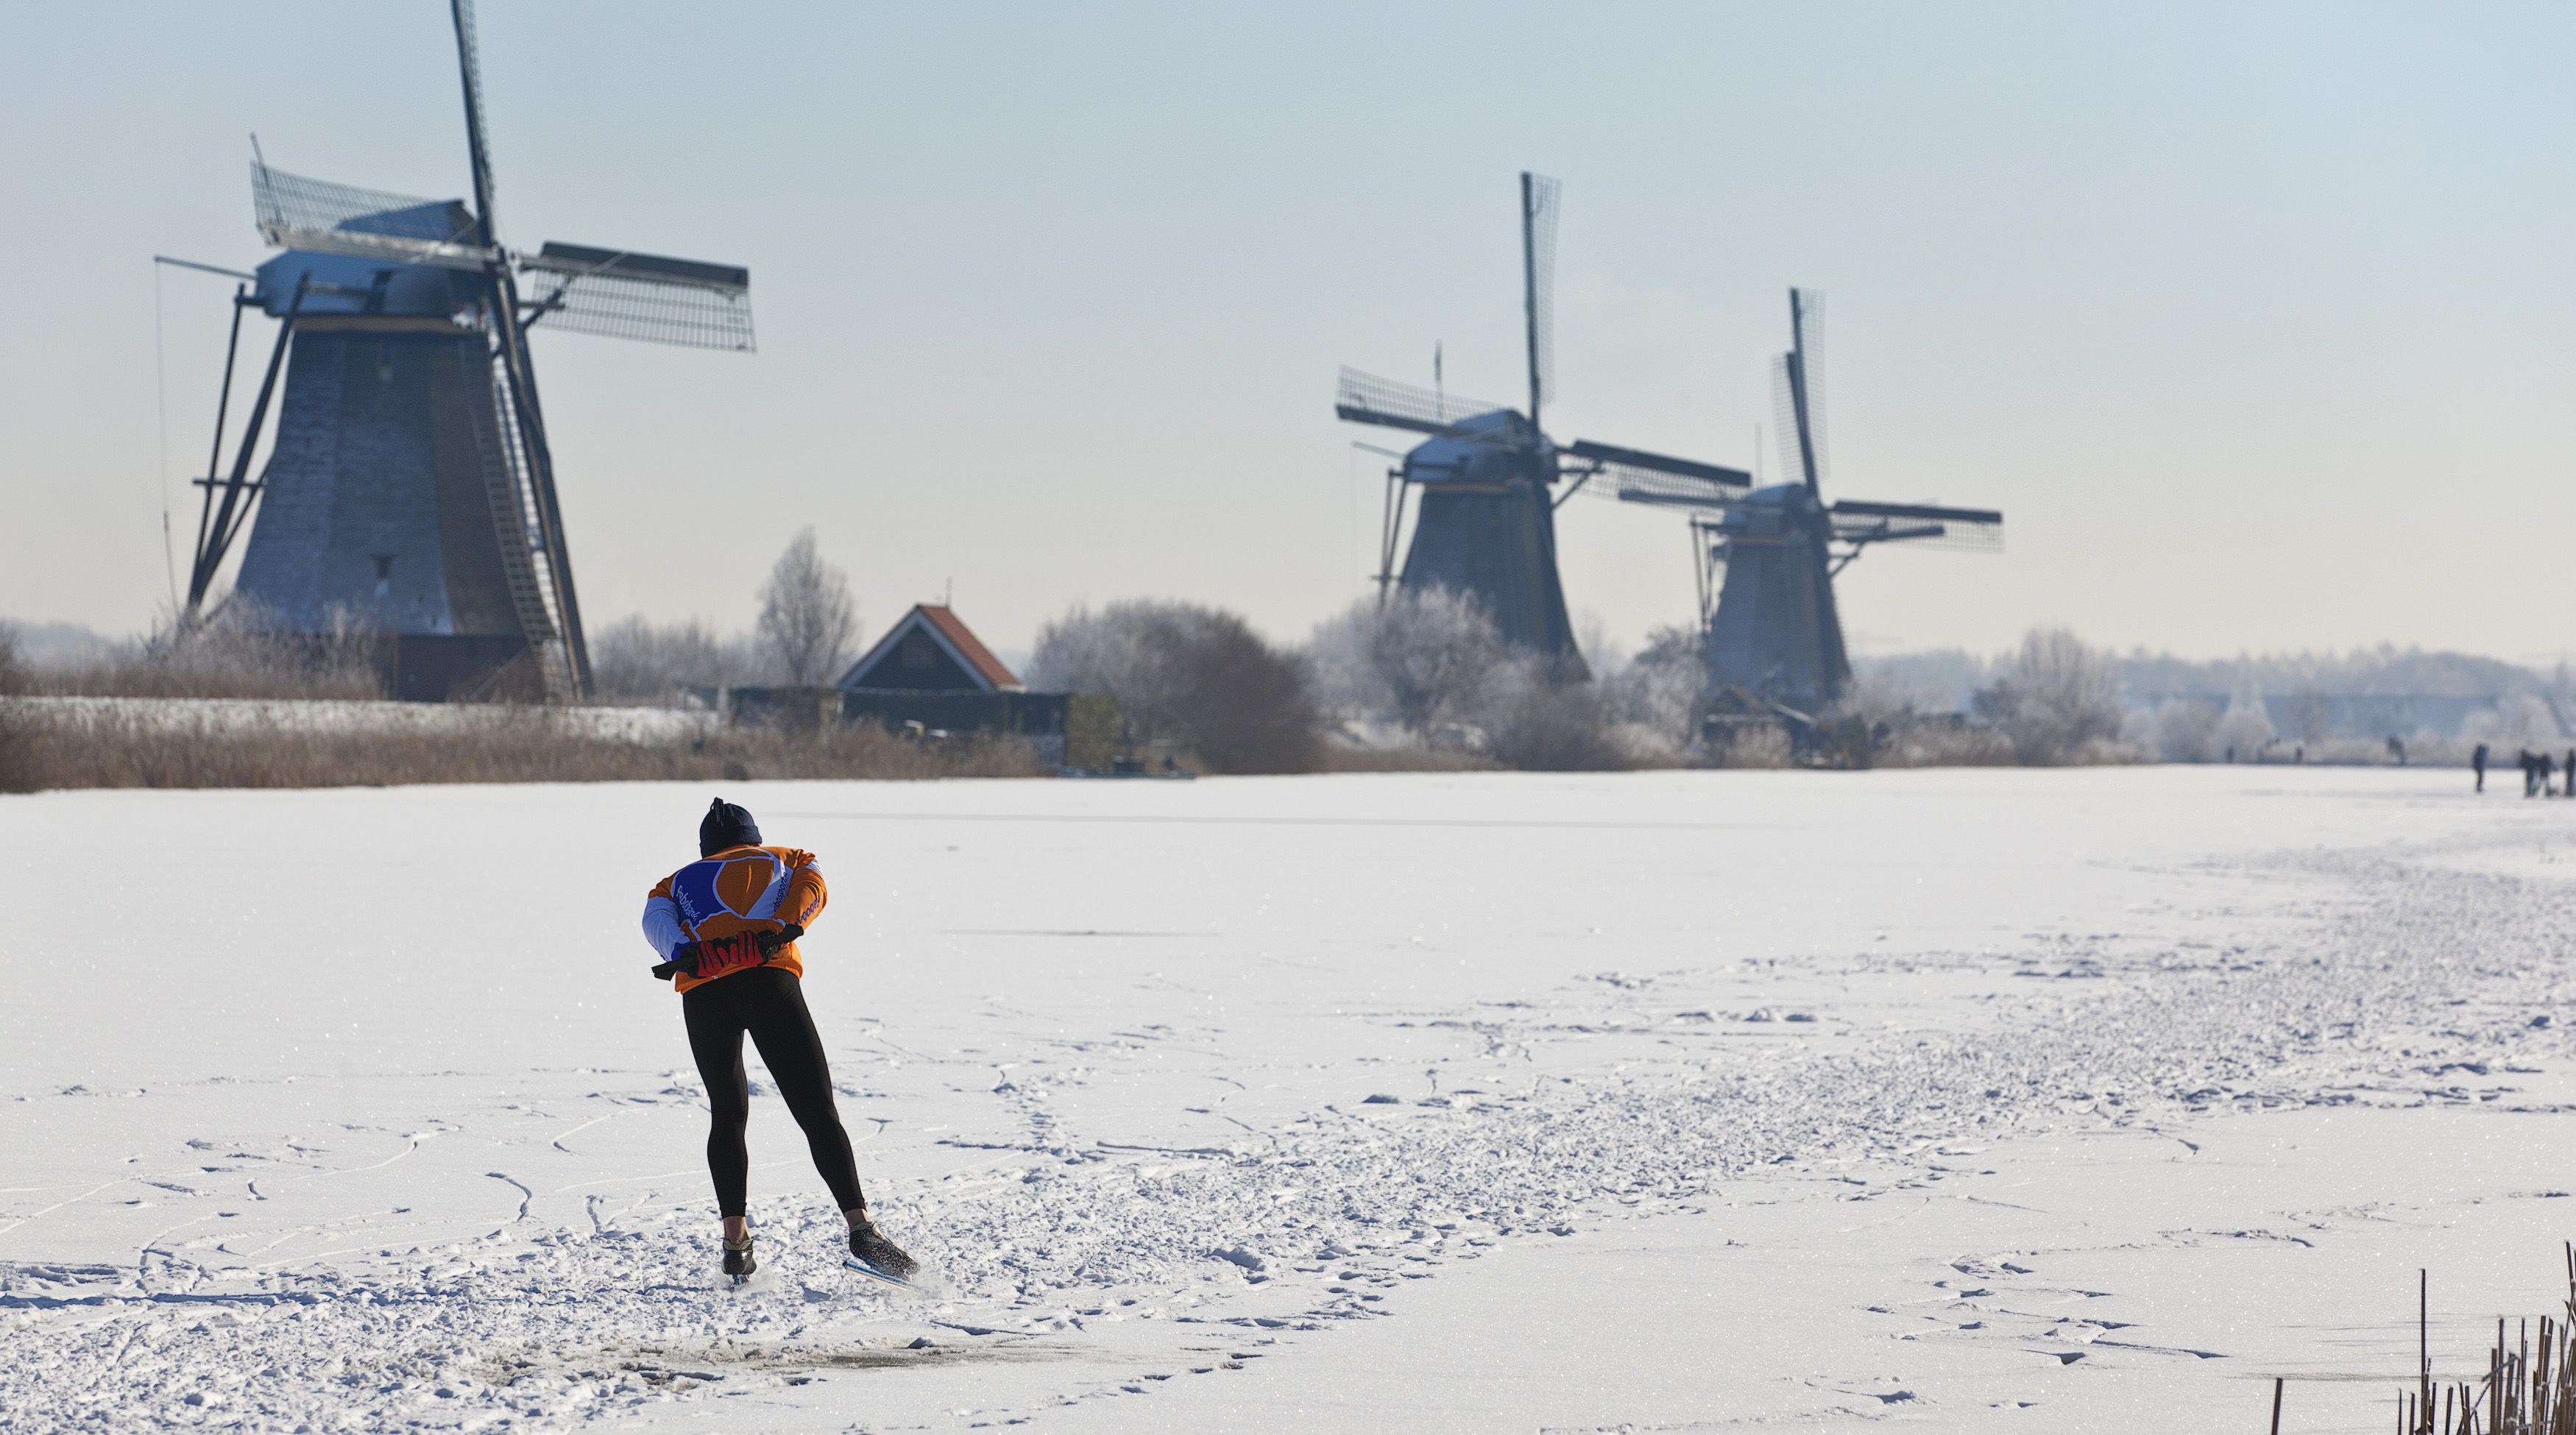 A lone skater skates past three windmills as he enjoys the first time he can skate on natural ice in Kinderdijk, near Rotterdam February 4, 2012. The 19 windmills near Kinderdijk are on the UNESCO world heritage list. REUTERS/Michael Kooren (NETHERLANDS - Tags: SOCIETY ENVIRONMENT) - RTR2XBDE